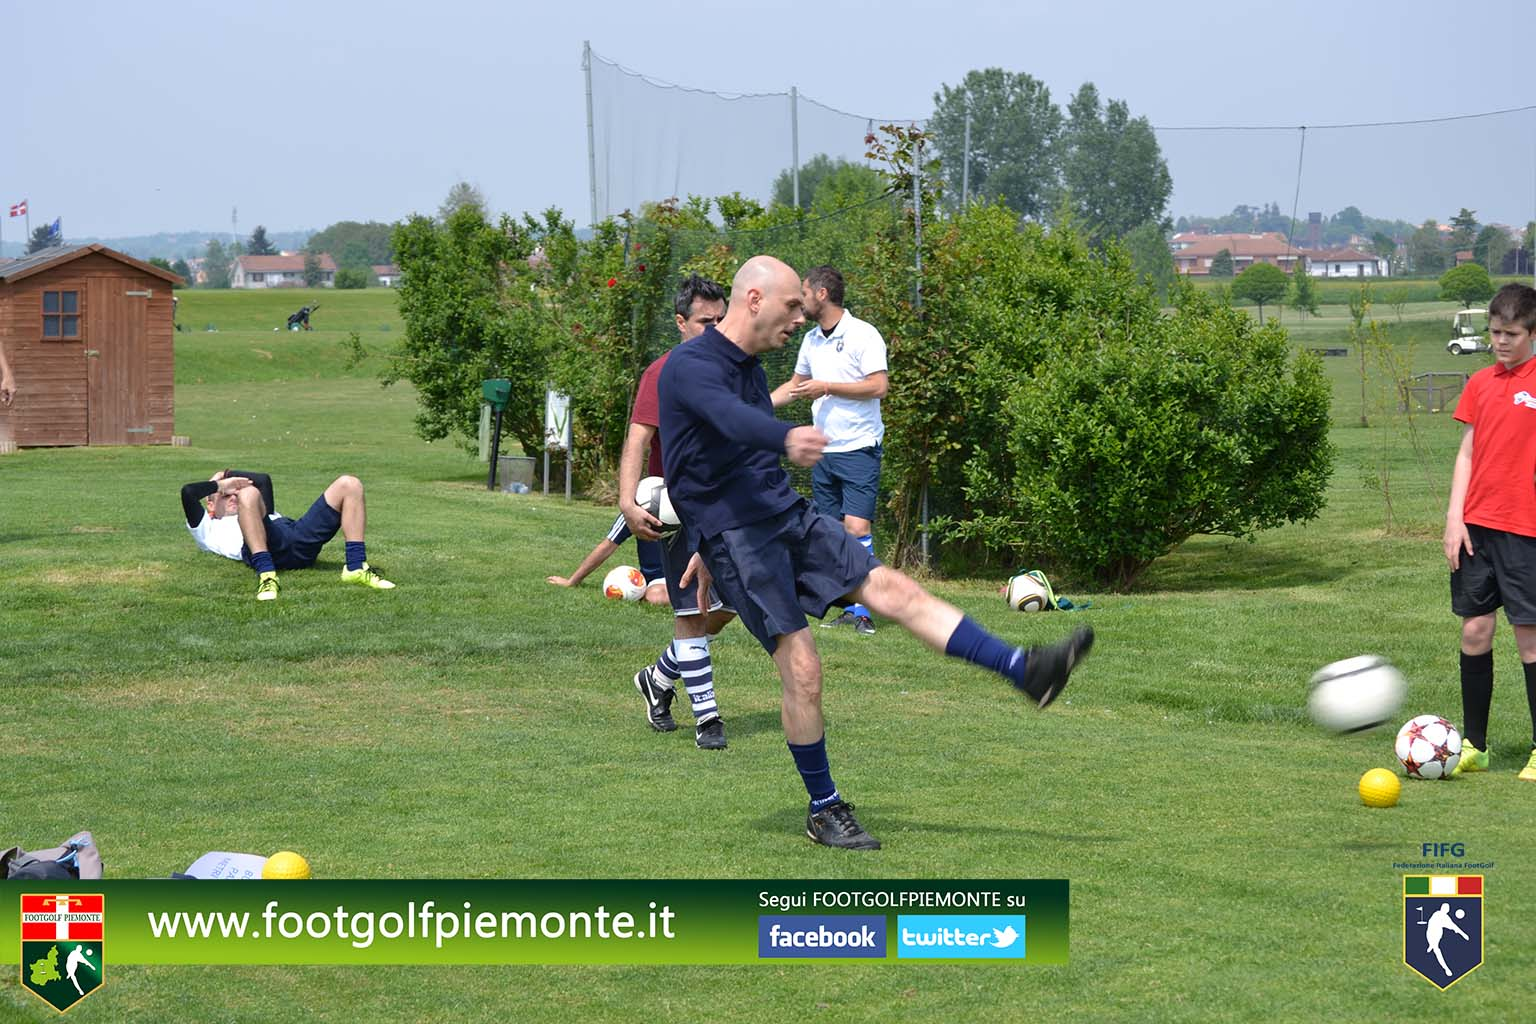 FOTO 9 Regions' Cup Footgolf Piemonte 2016 Golf Città di Asti (At) 30apr16-81